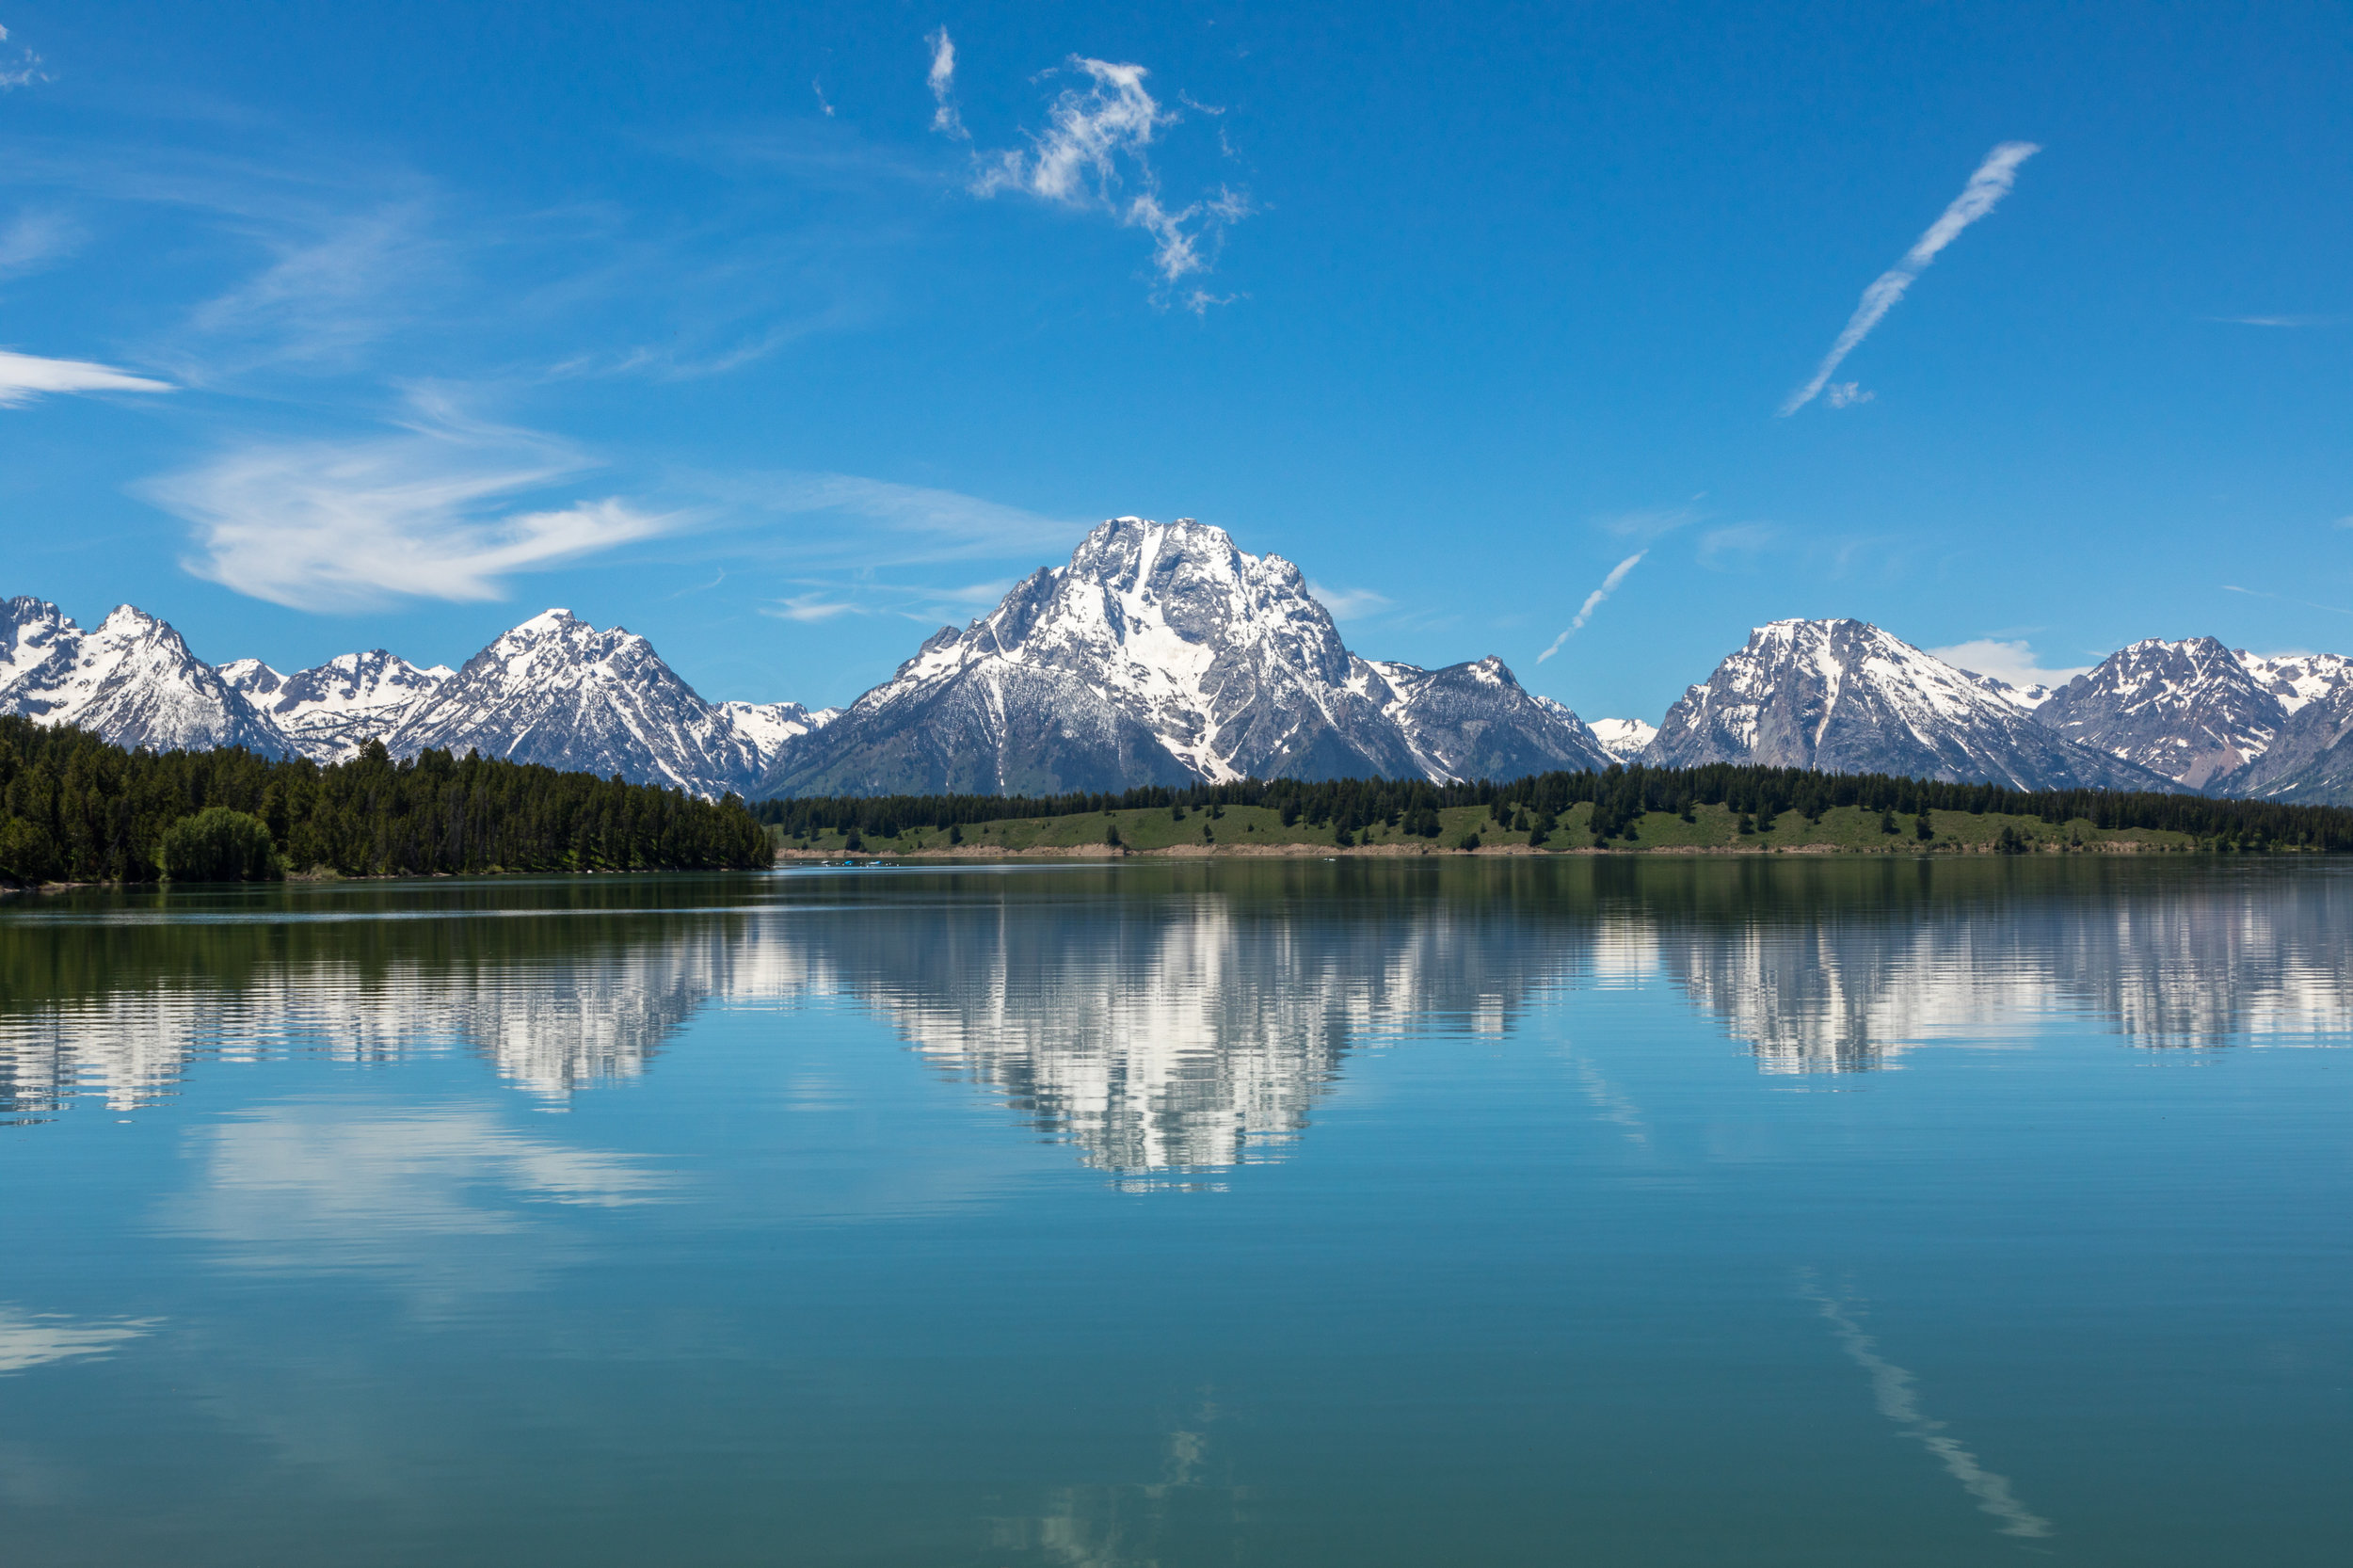 Reflection of Mount Moran in Jackson Lake, Image # 2508